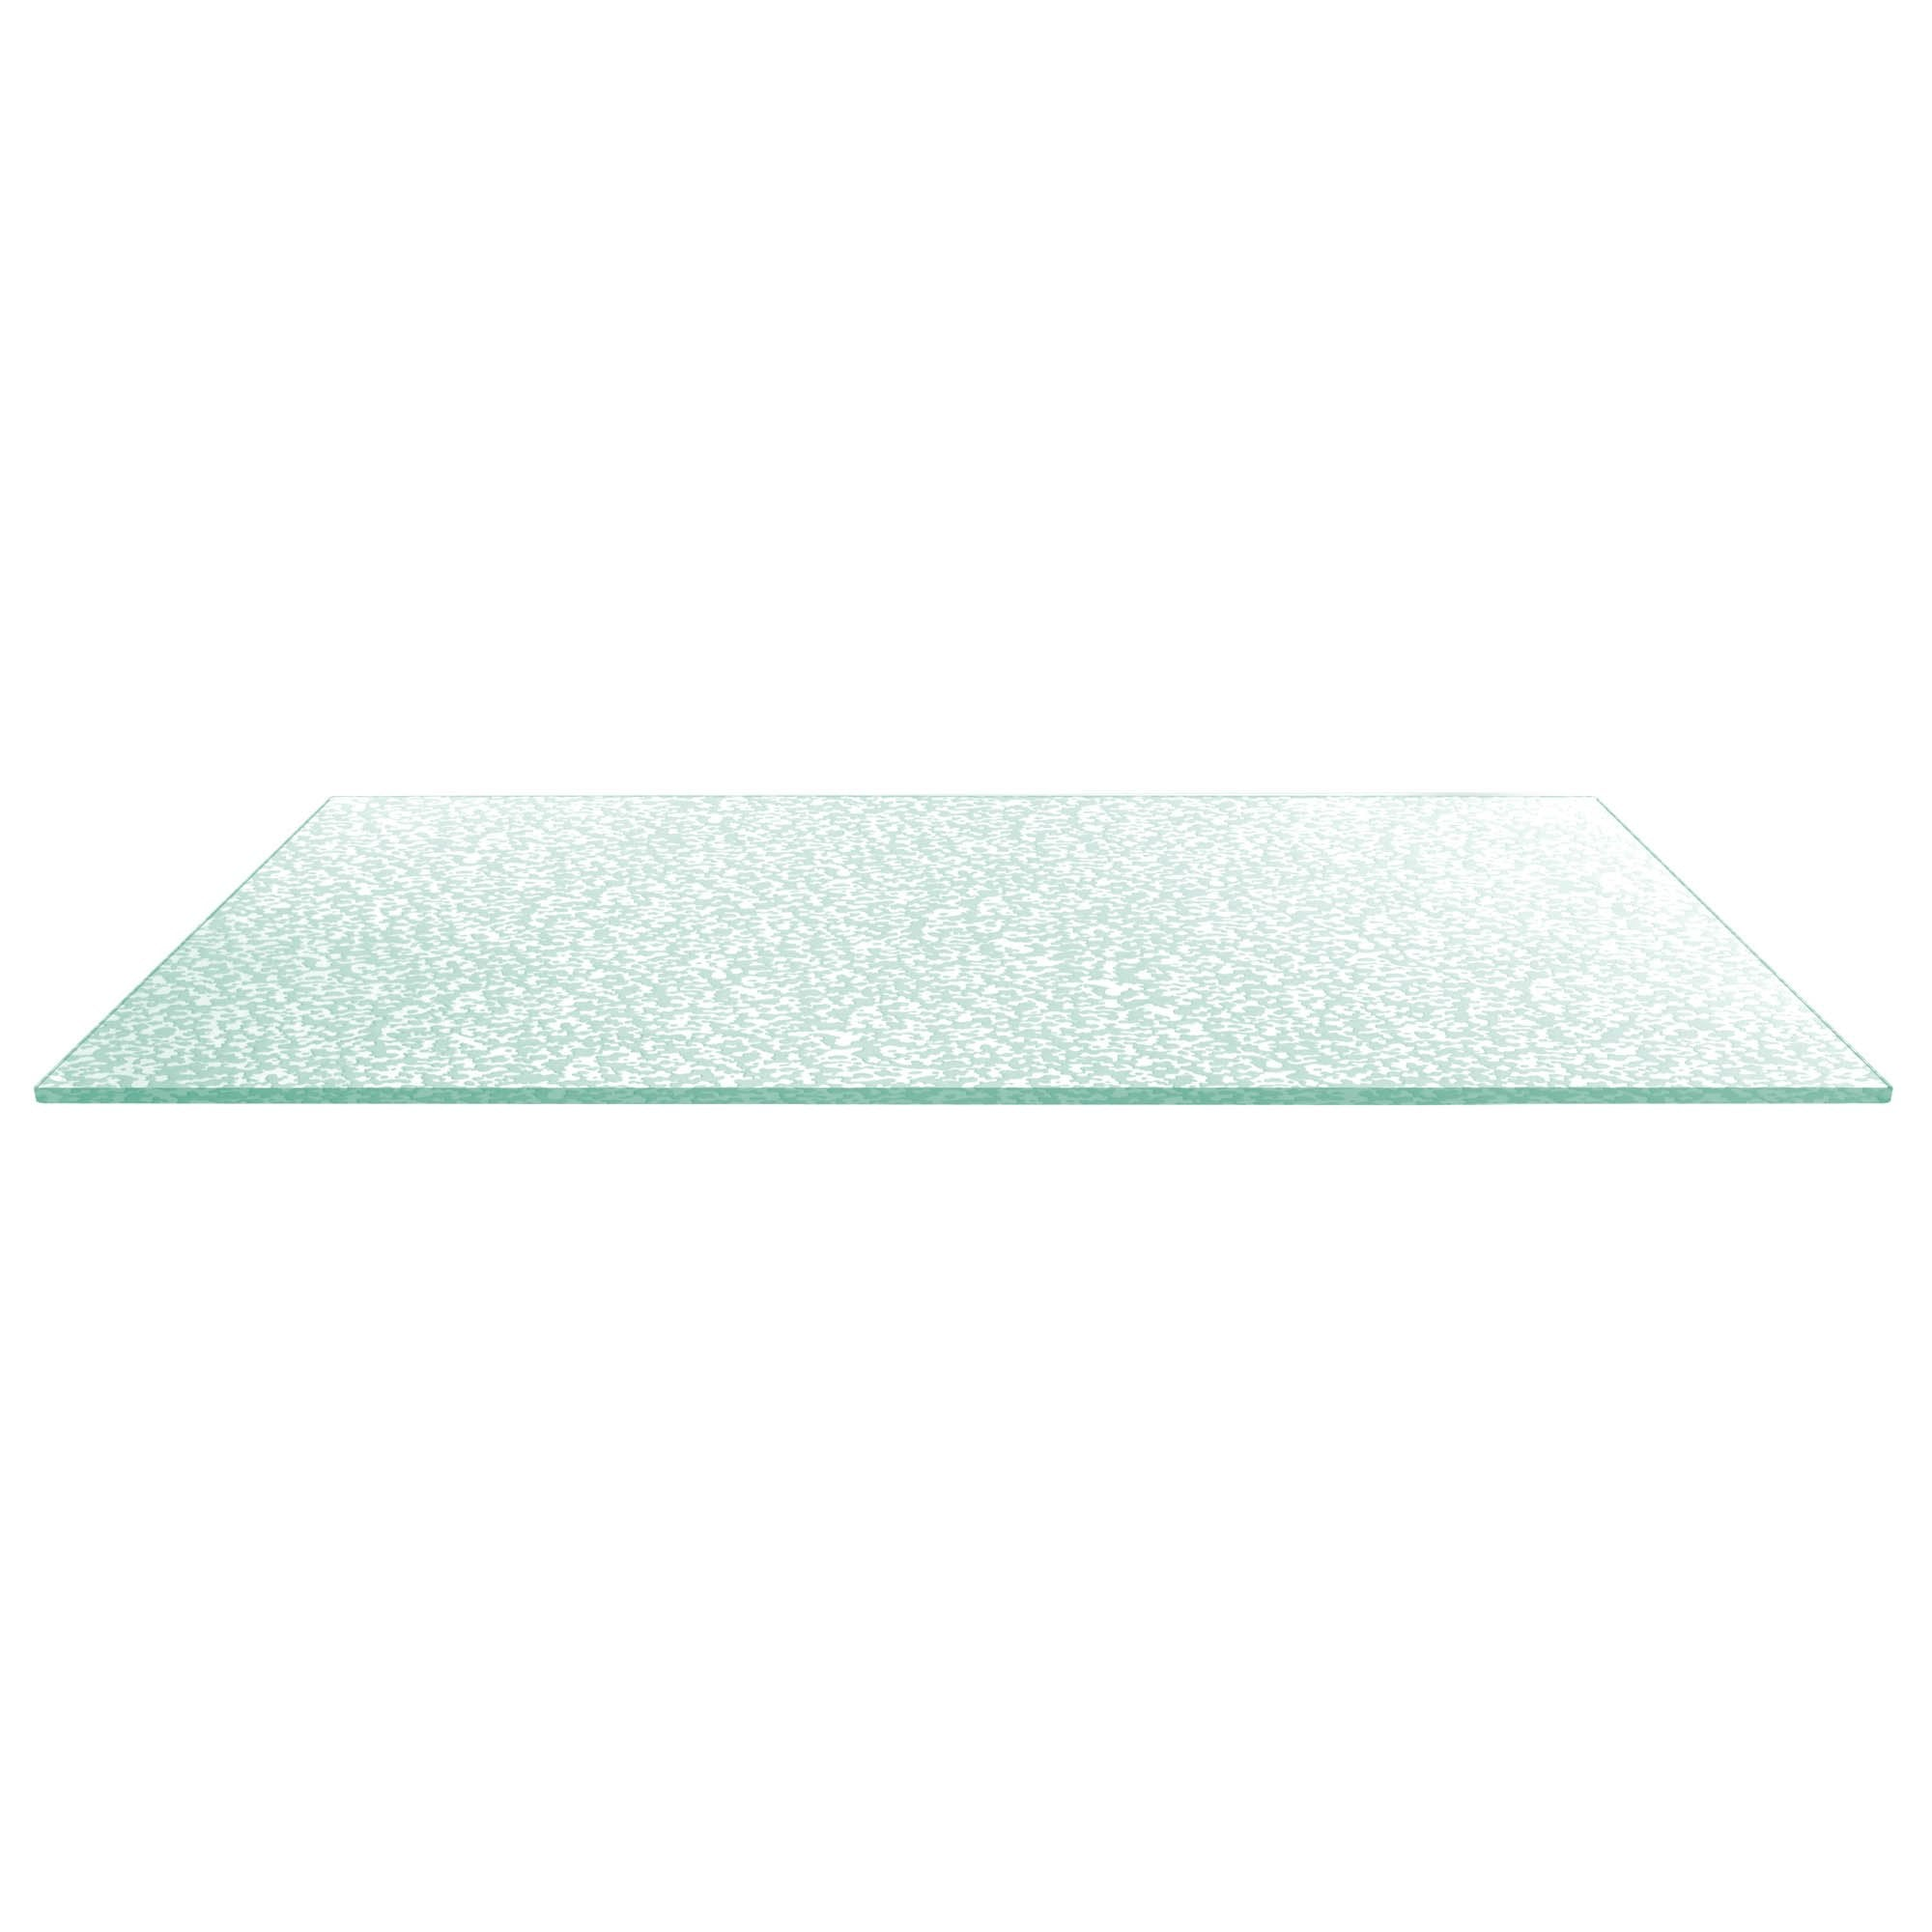 "Lunar 75"" x 42"" Rectangle Dining Table Top"